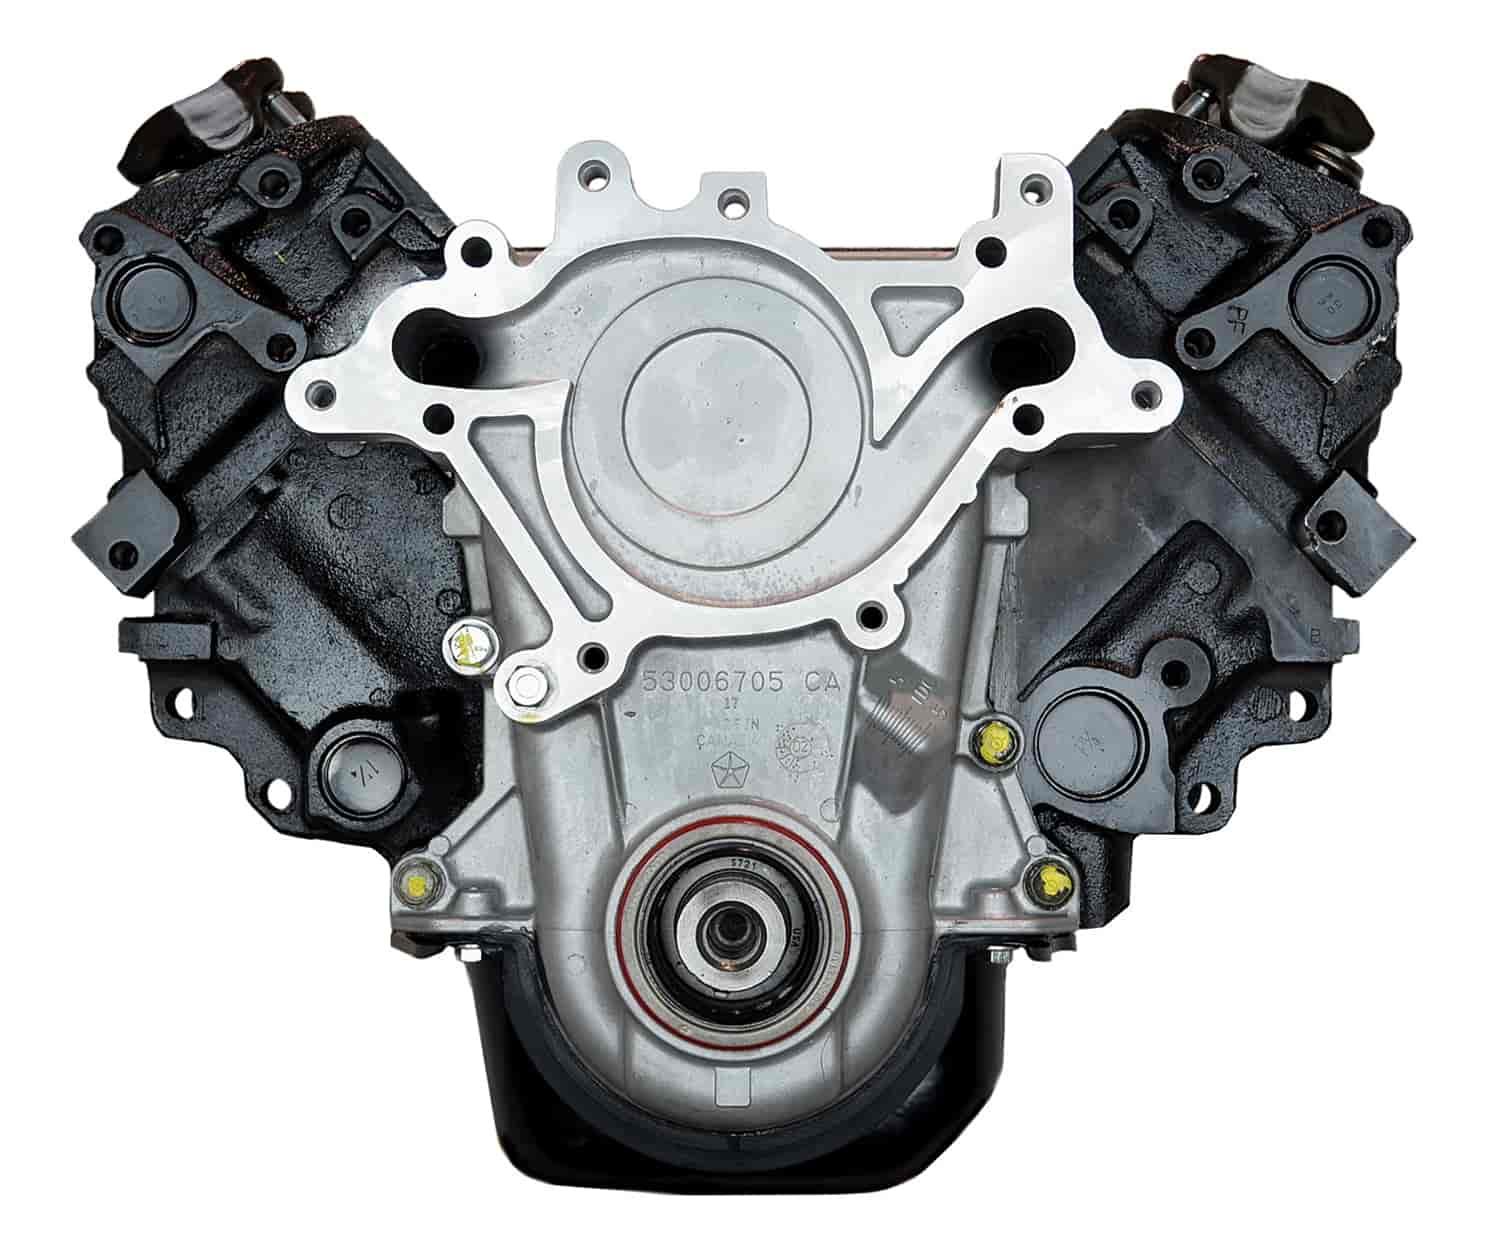 ATK Engines VD58: Remanufactured Crate Engine For 1993